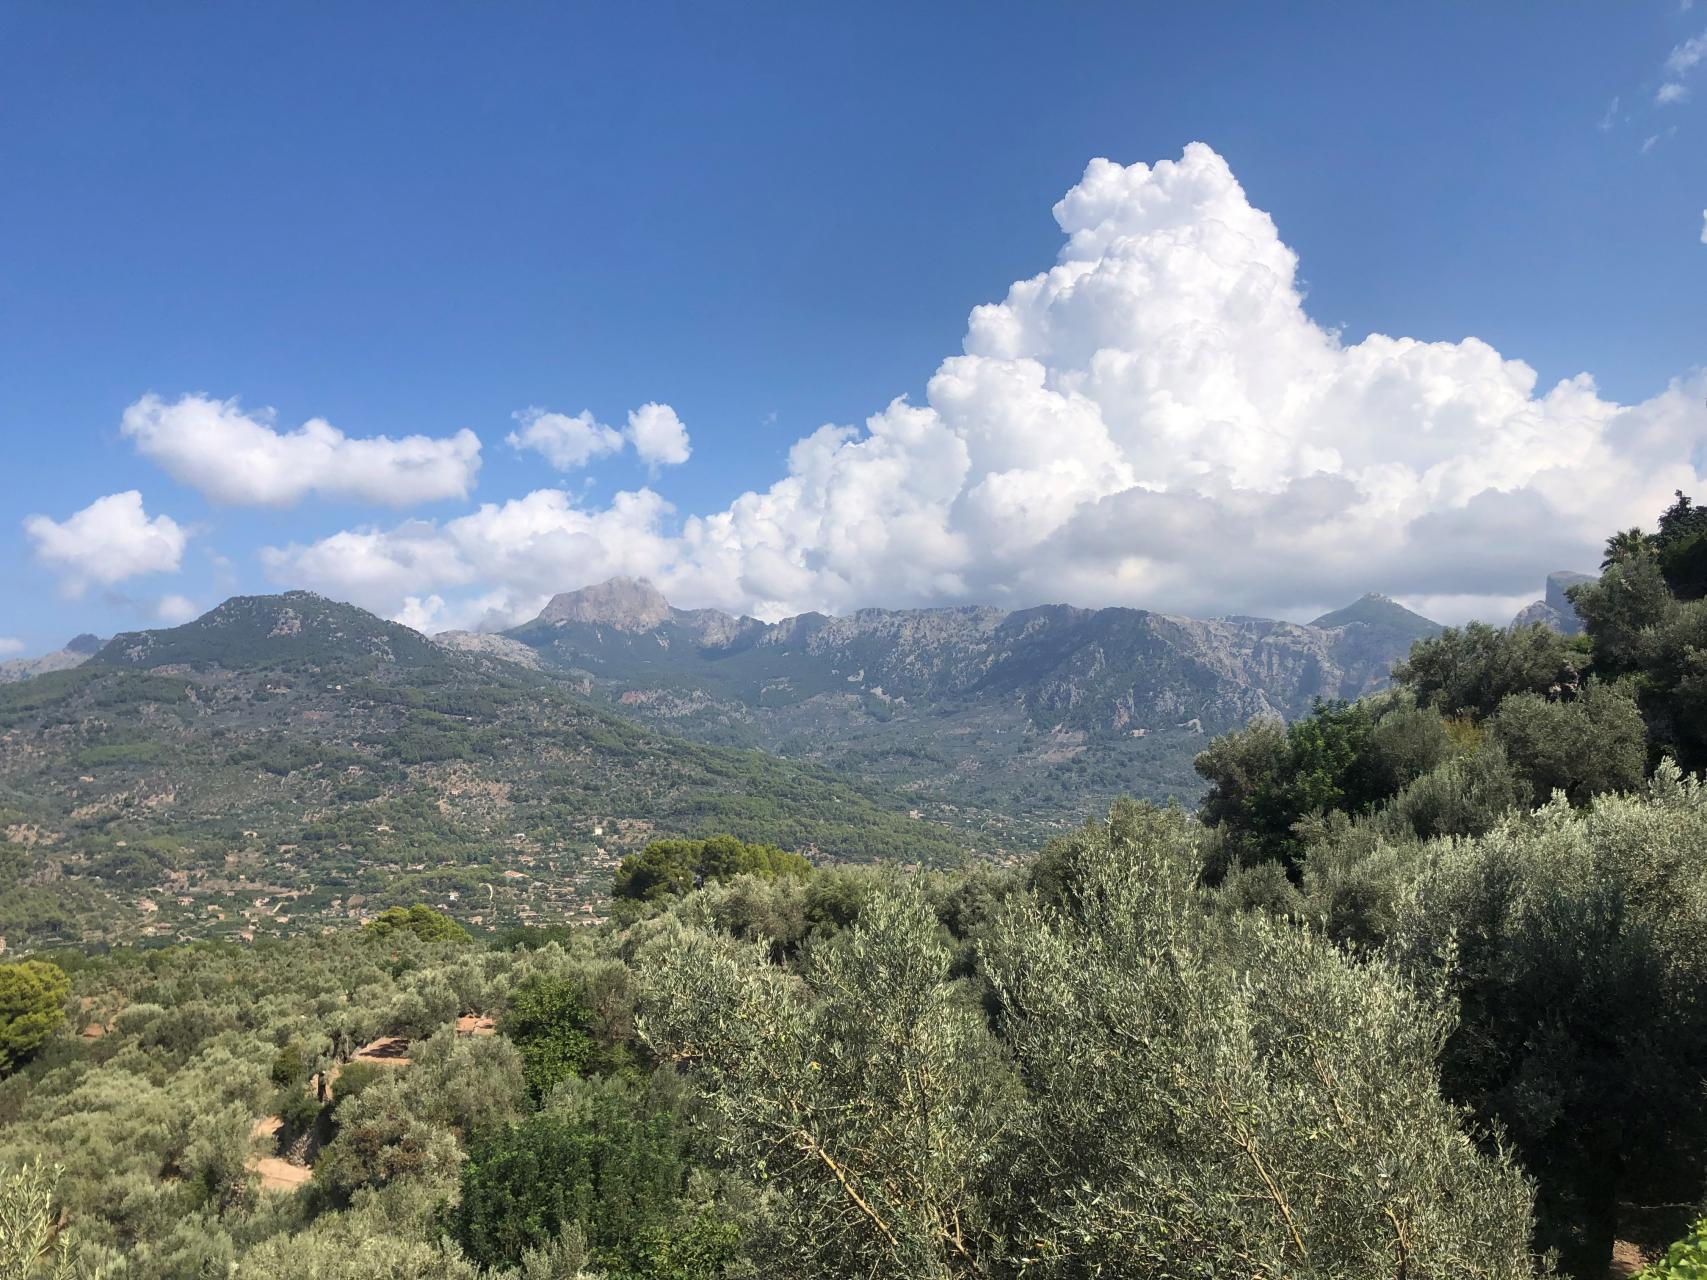 Clouds gathering above Sóller Valley